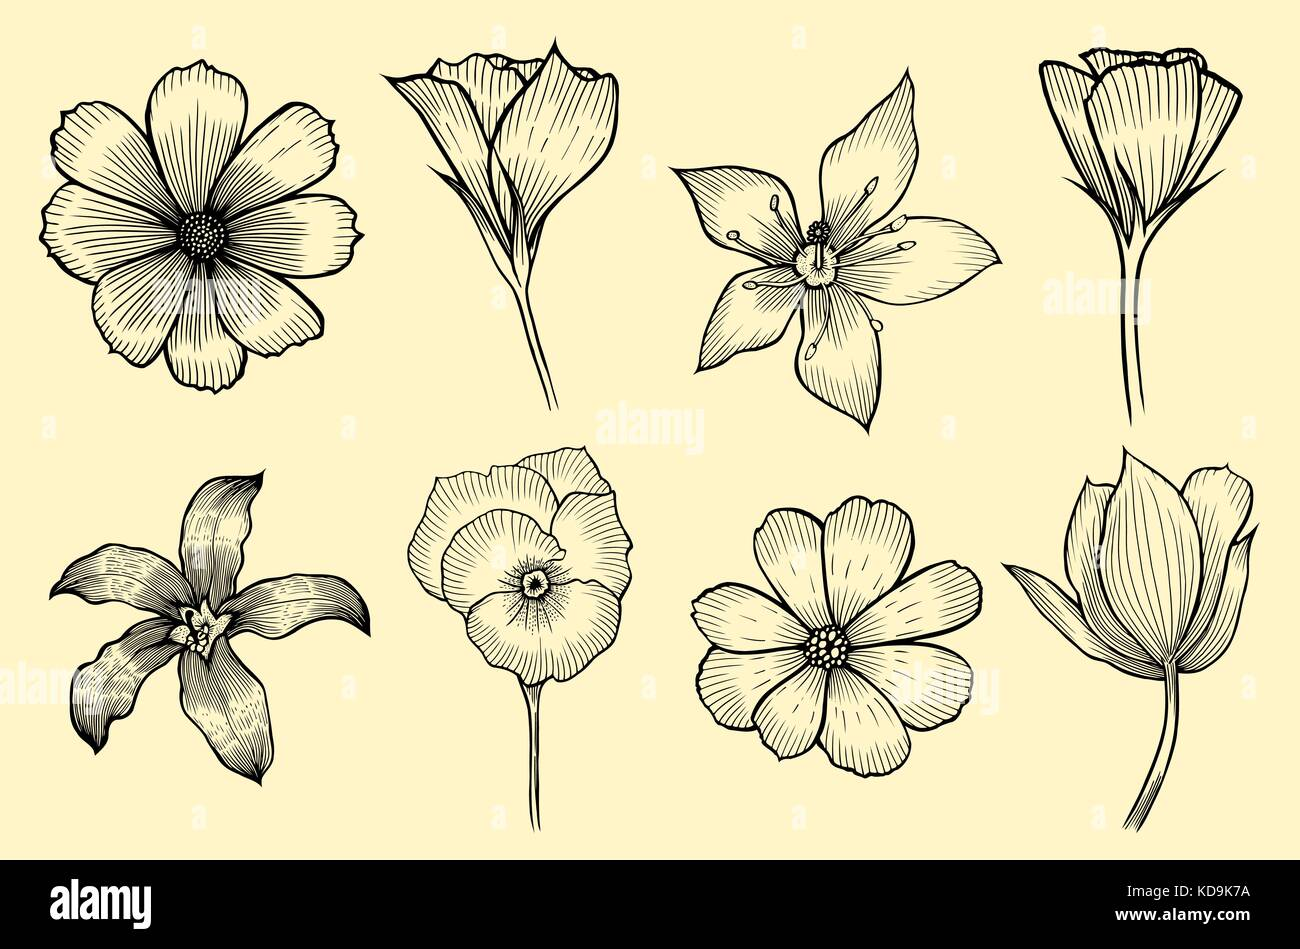 Exotic flowers set. Botanical vector vintage illustration. Design elements. Stock Vector